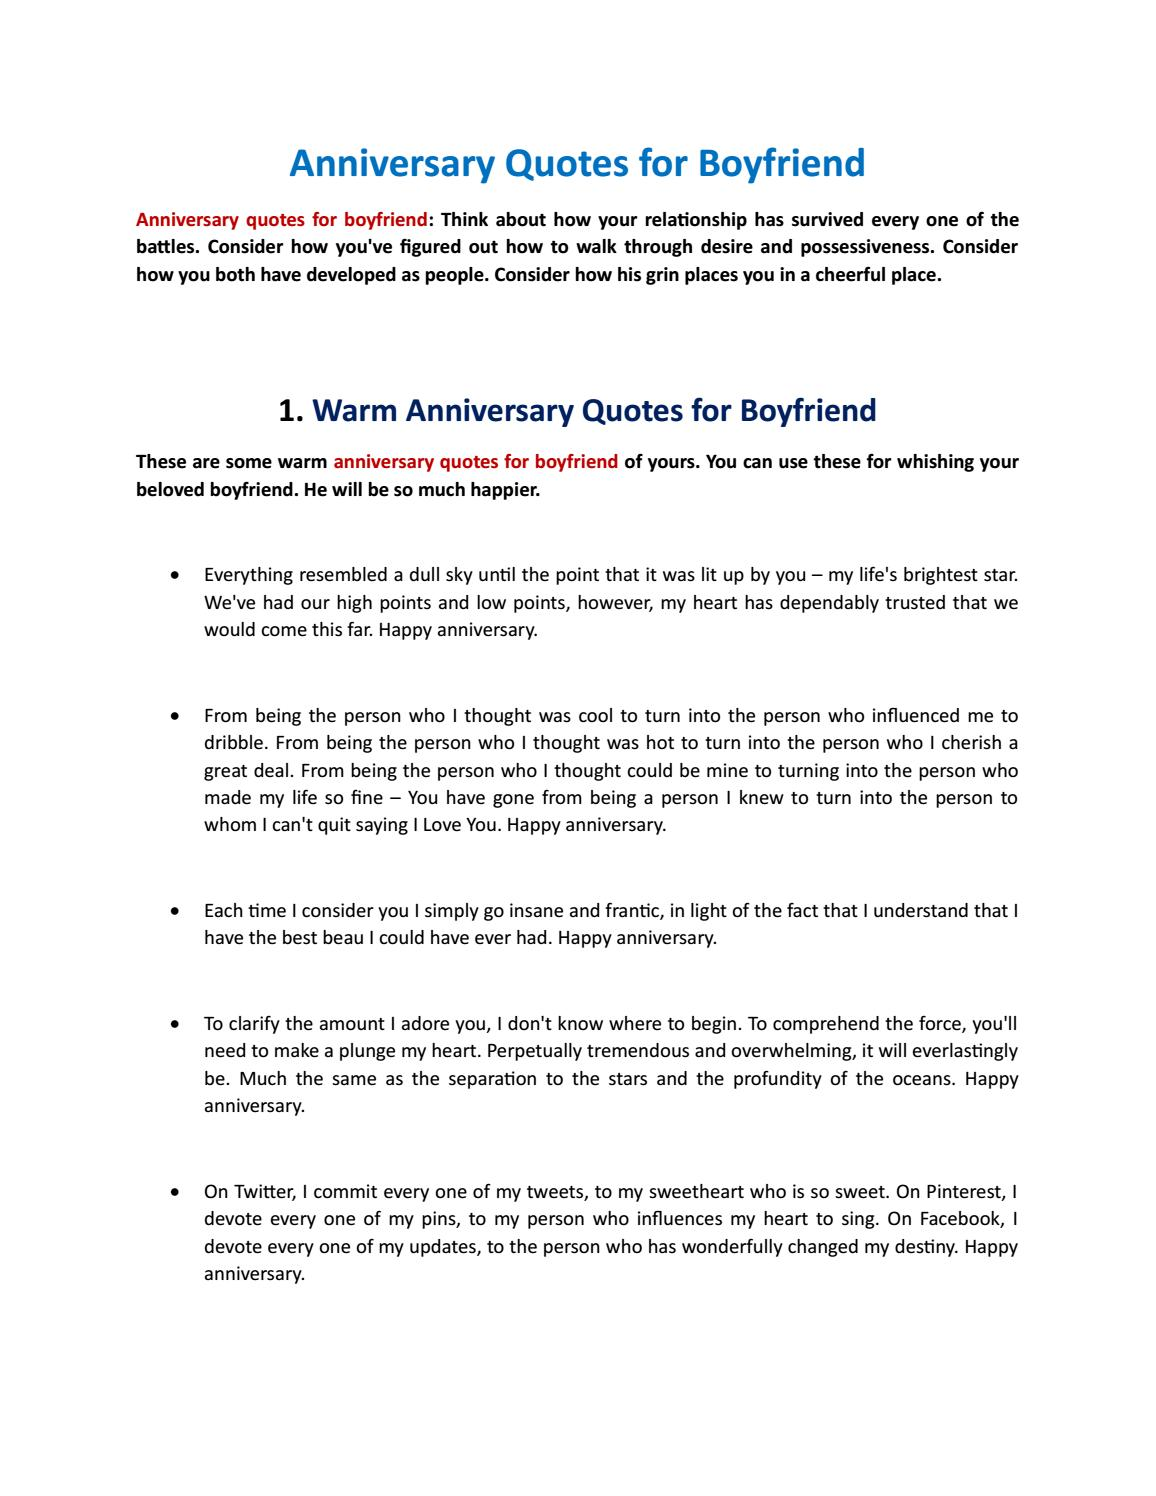 Anniversary Quotes For Boyfriend By Bh Cyber Issuu